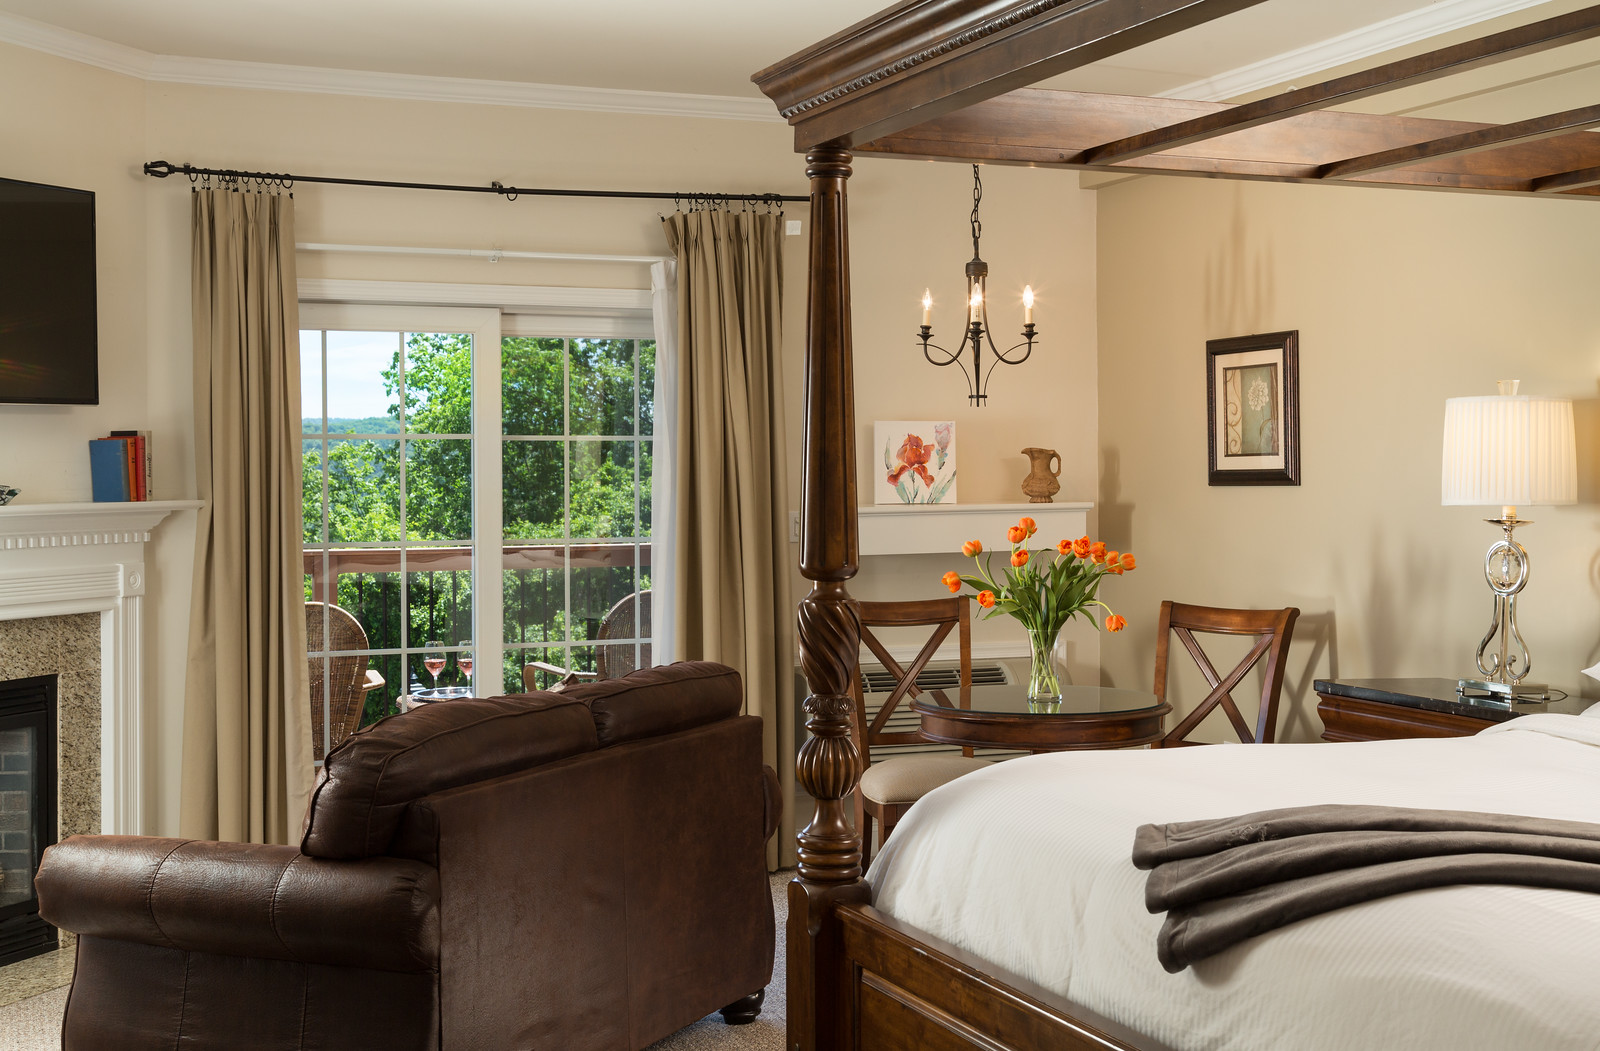 French-Manor-Rooms-Spa-1-2-X3.jpg